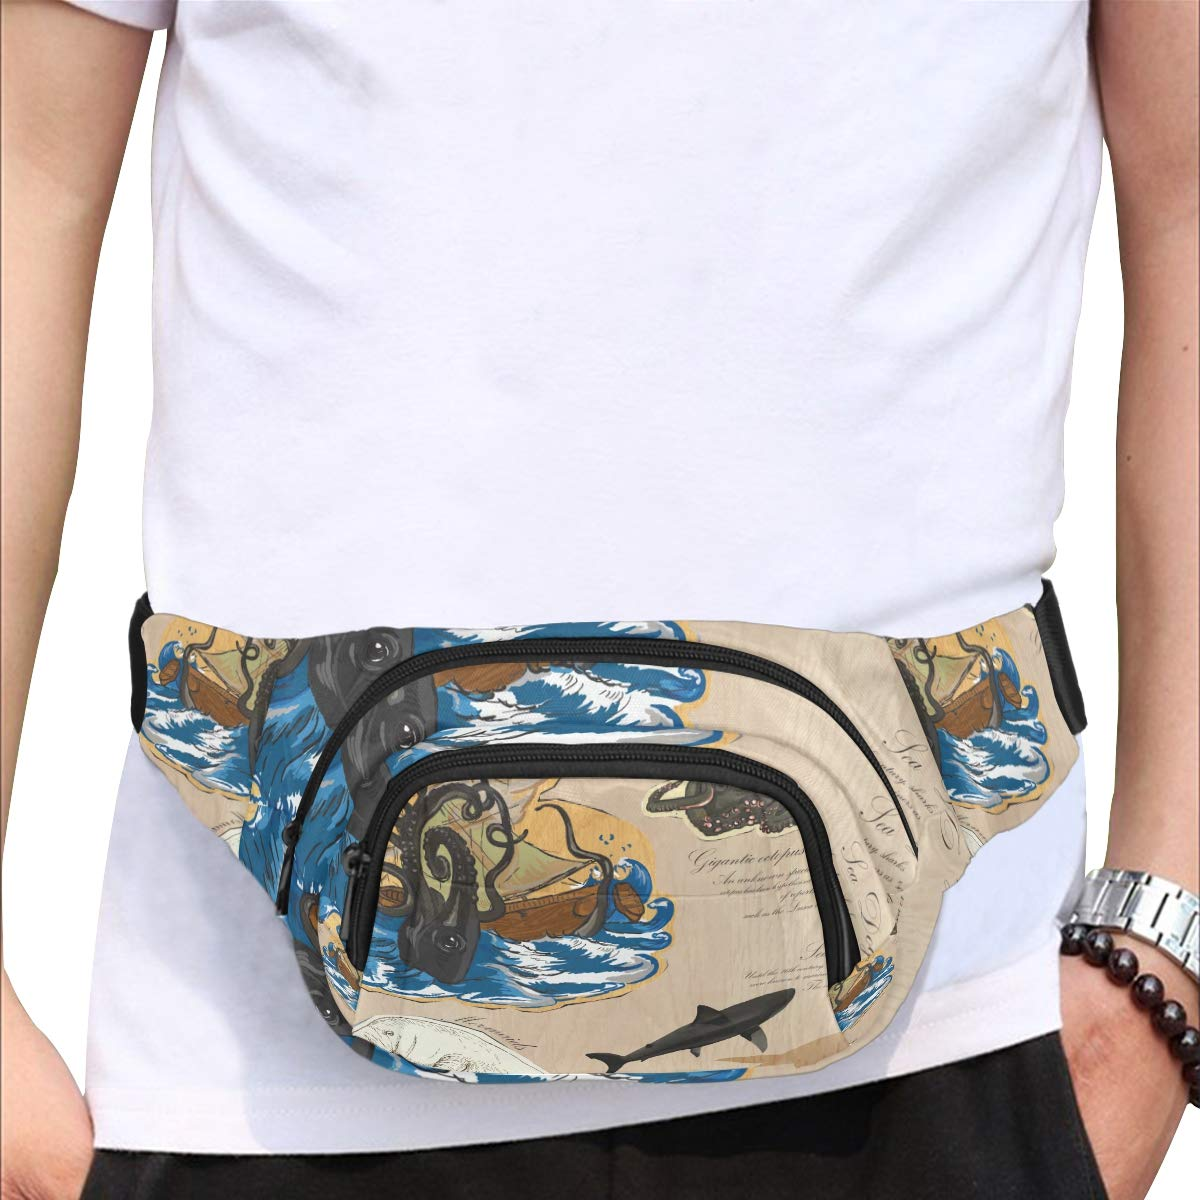 Pirate Fantasy Island Map Fenny Packs Waist Bags Adjustable Belt Waterproof Nylon Travel Running Sport Vacation Party For Men Women Boys Girls Kids